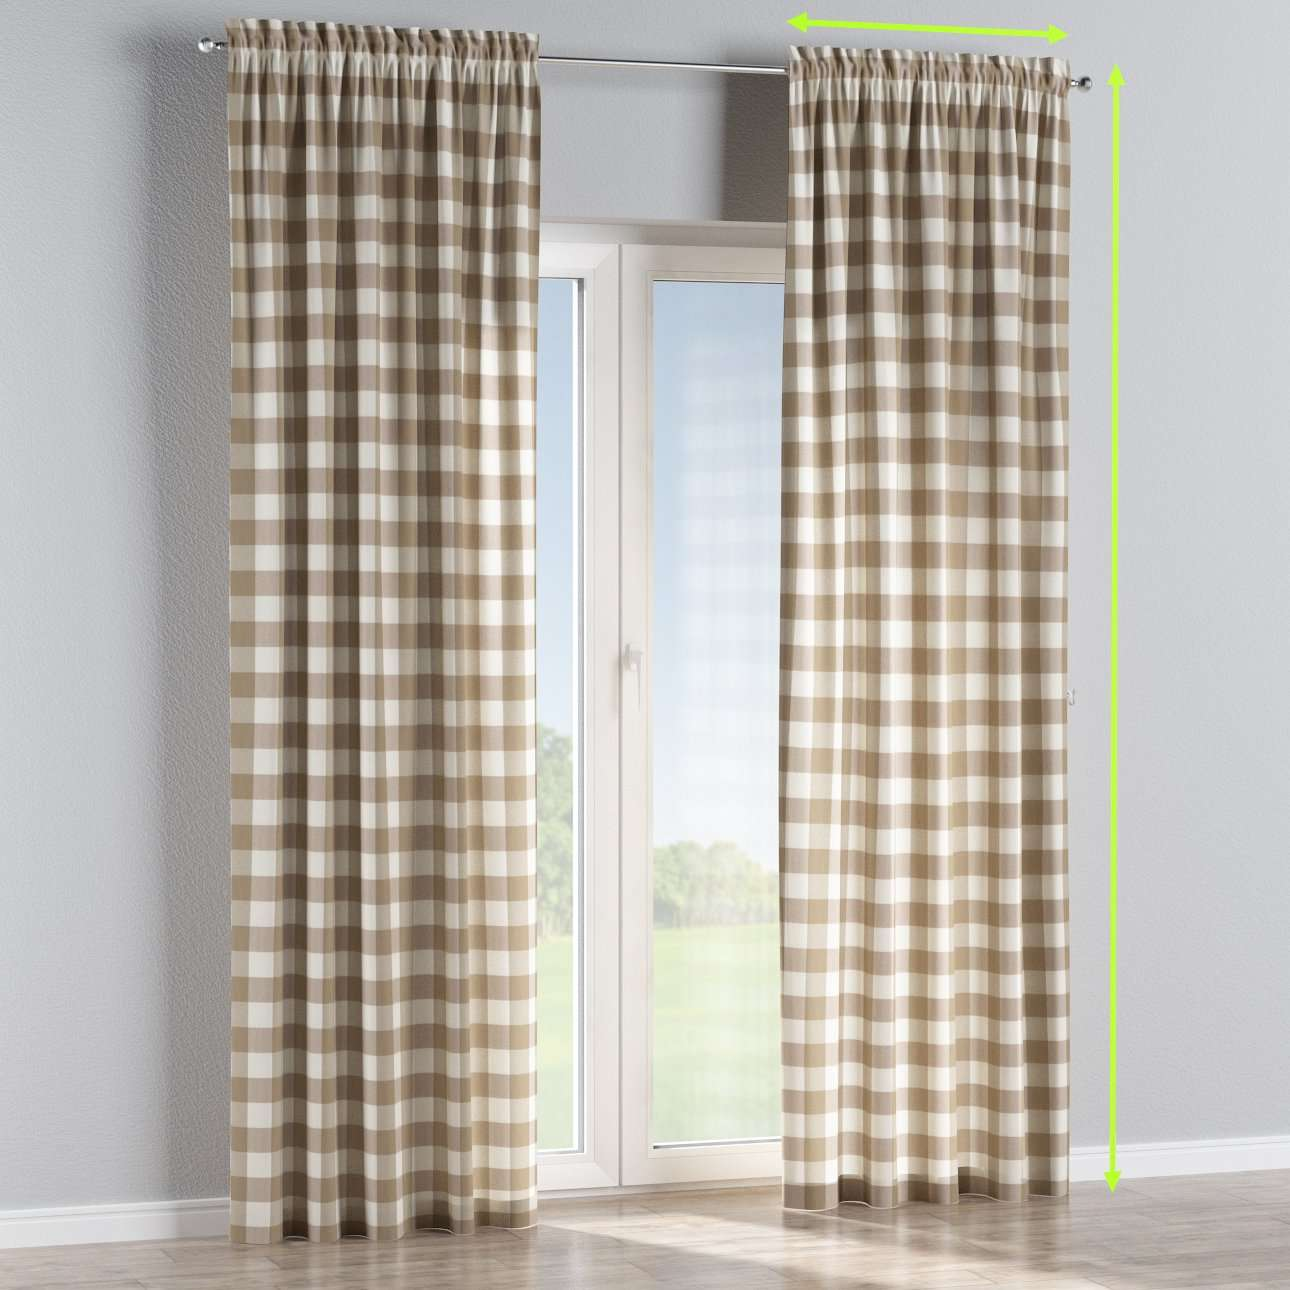 Slot and frill curtains in collection Quadro, fabric: 136-08